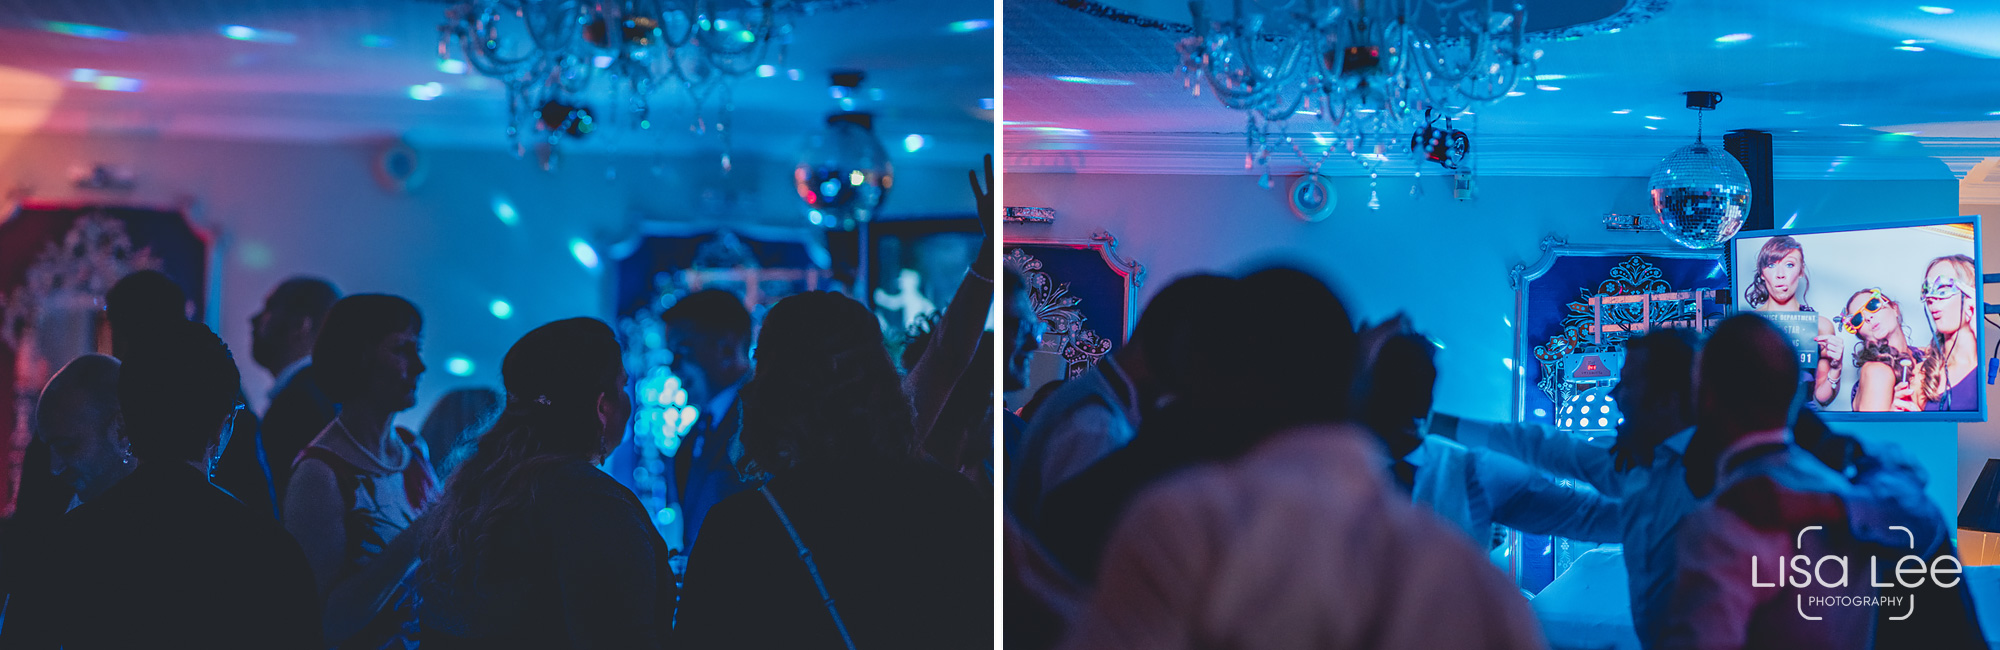 Lord-Bute-Hotel-Lisa-Lee-Documentary-Wedding-Photography-party-14.jpg